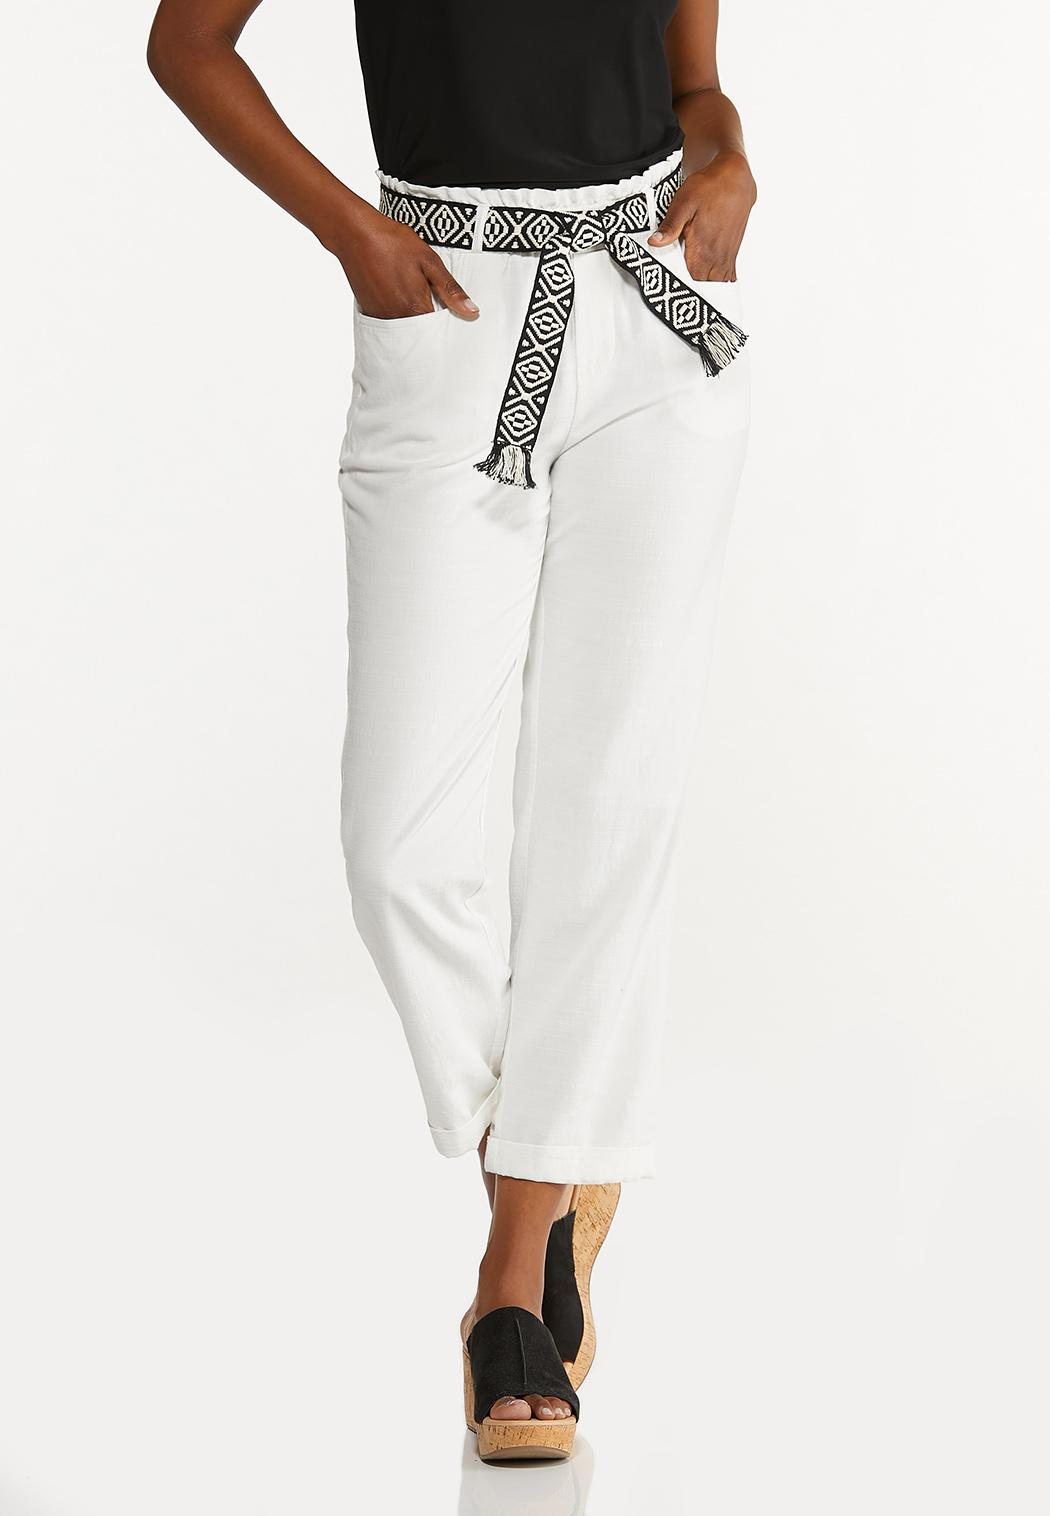 Breezy White Belted Pants